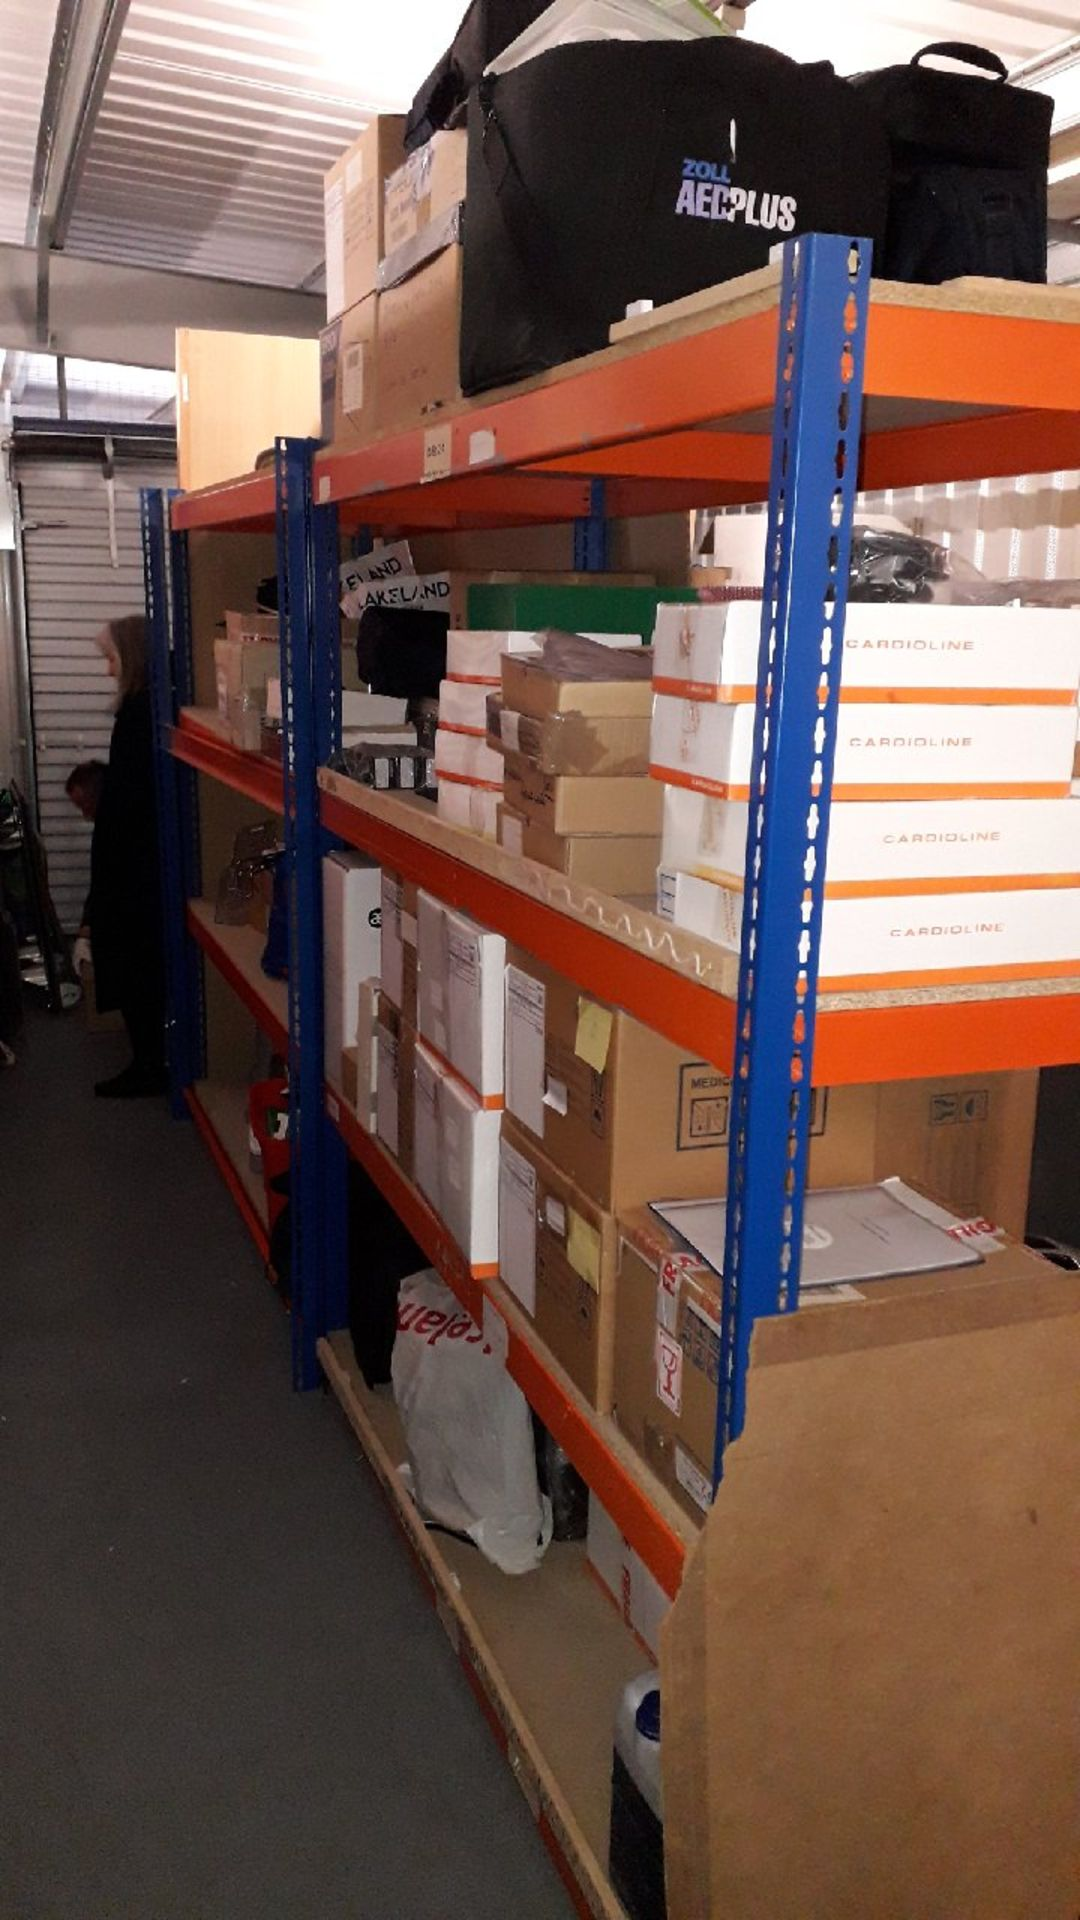 Stock of medical consumables and equipment to incl - Image 9 of 23